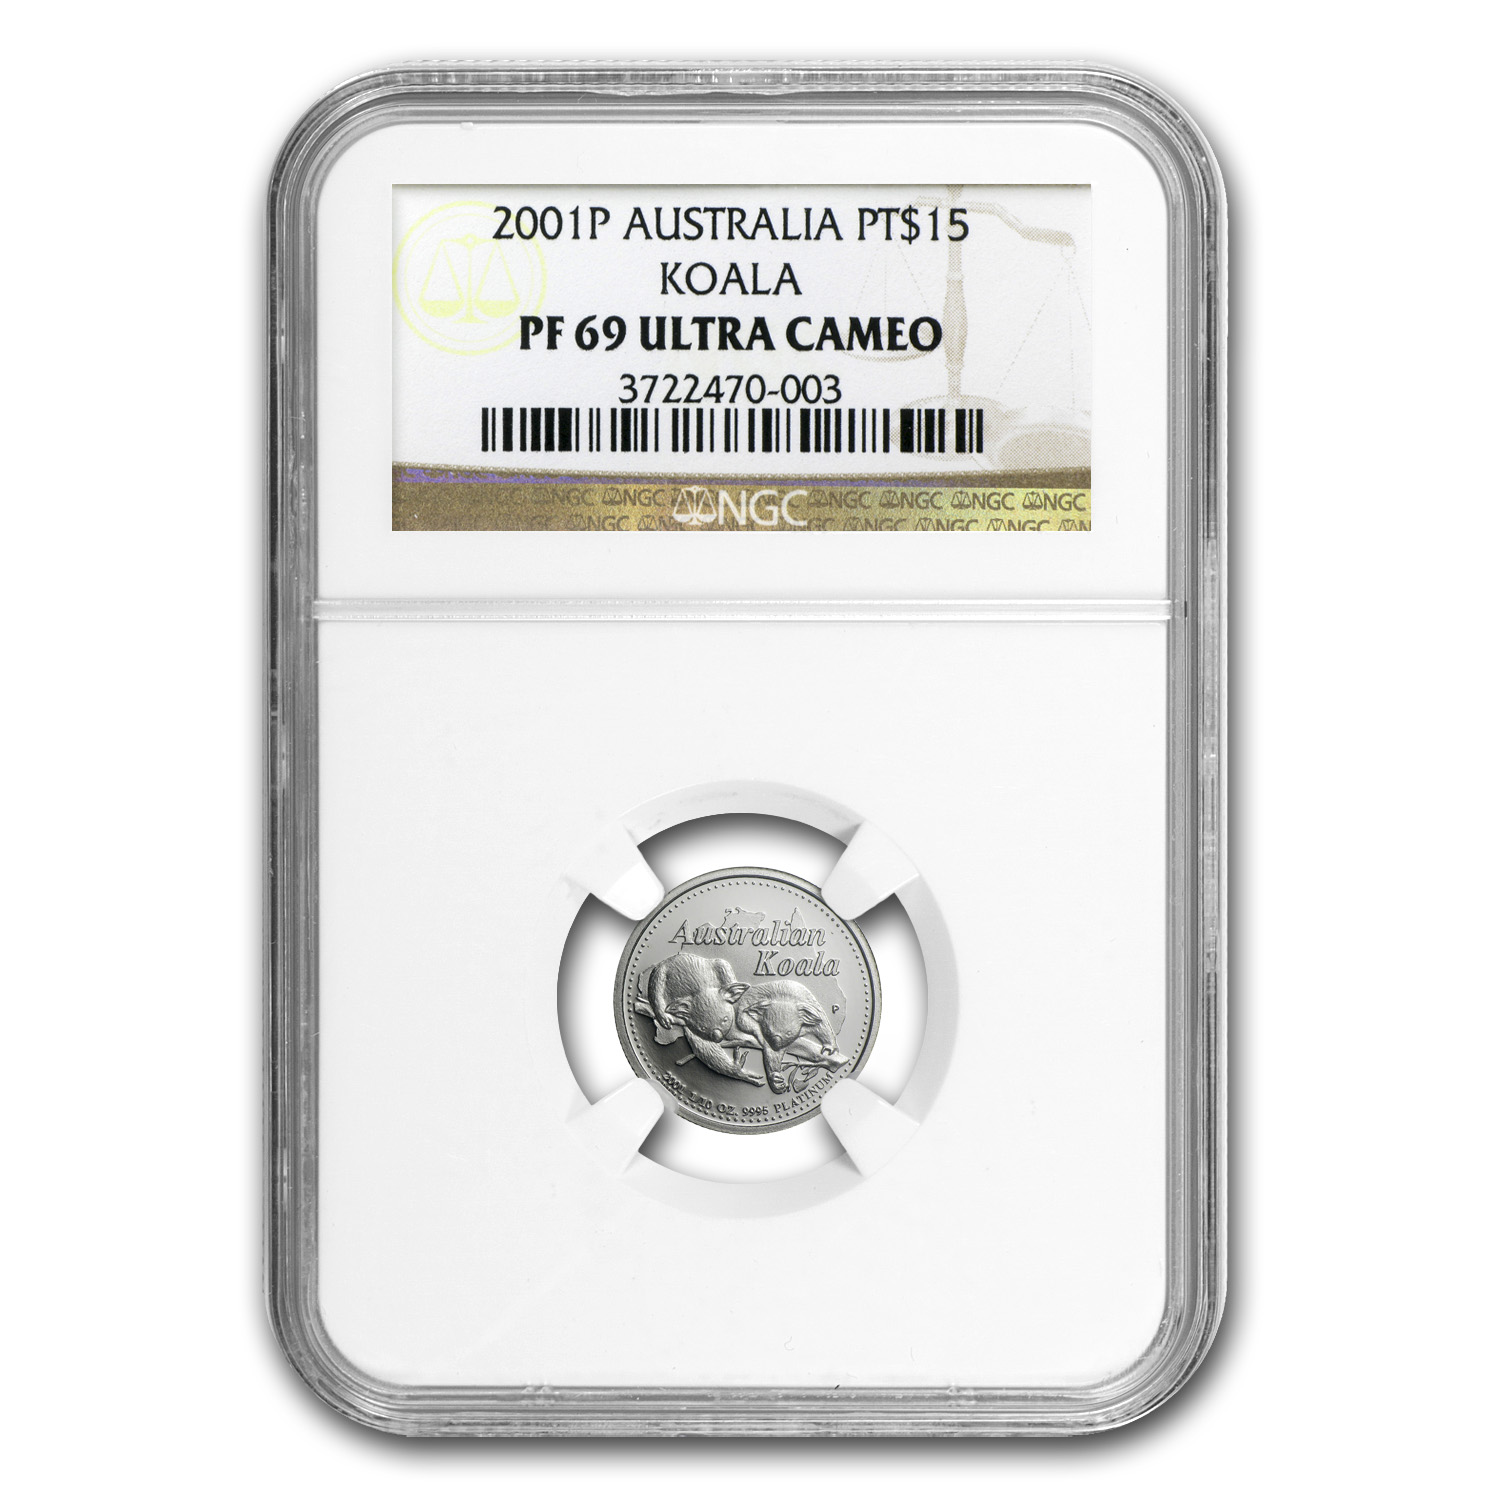 2001 Australia 1/10 oz Proof Platinum Koala PF-69 NGC